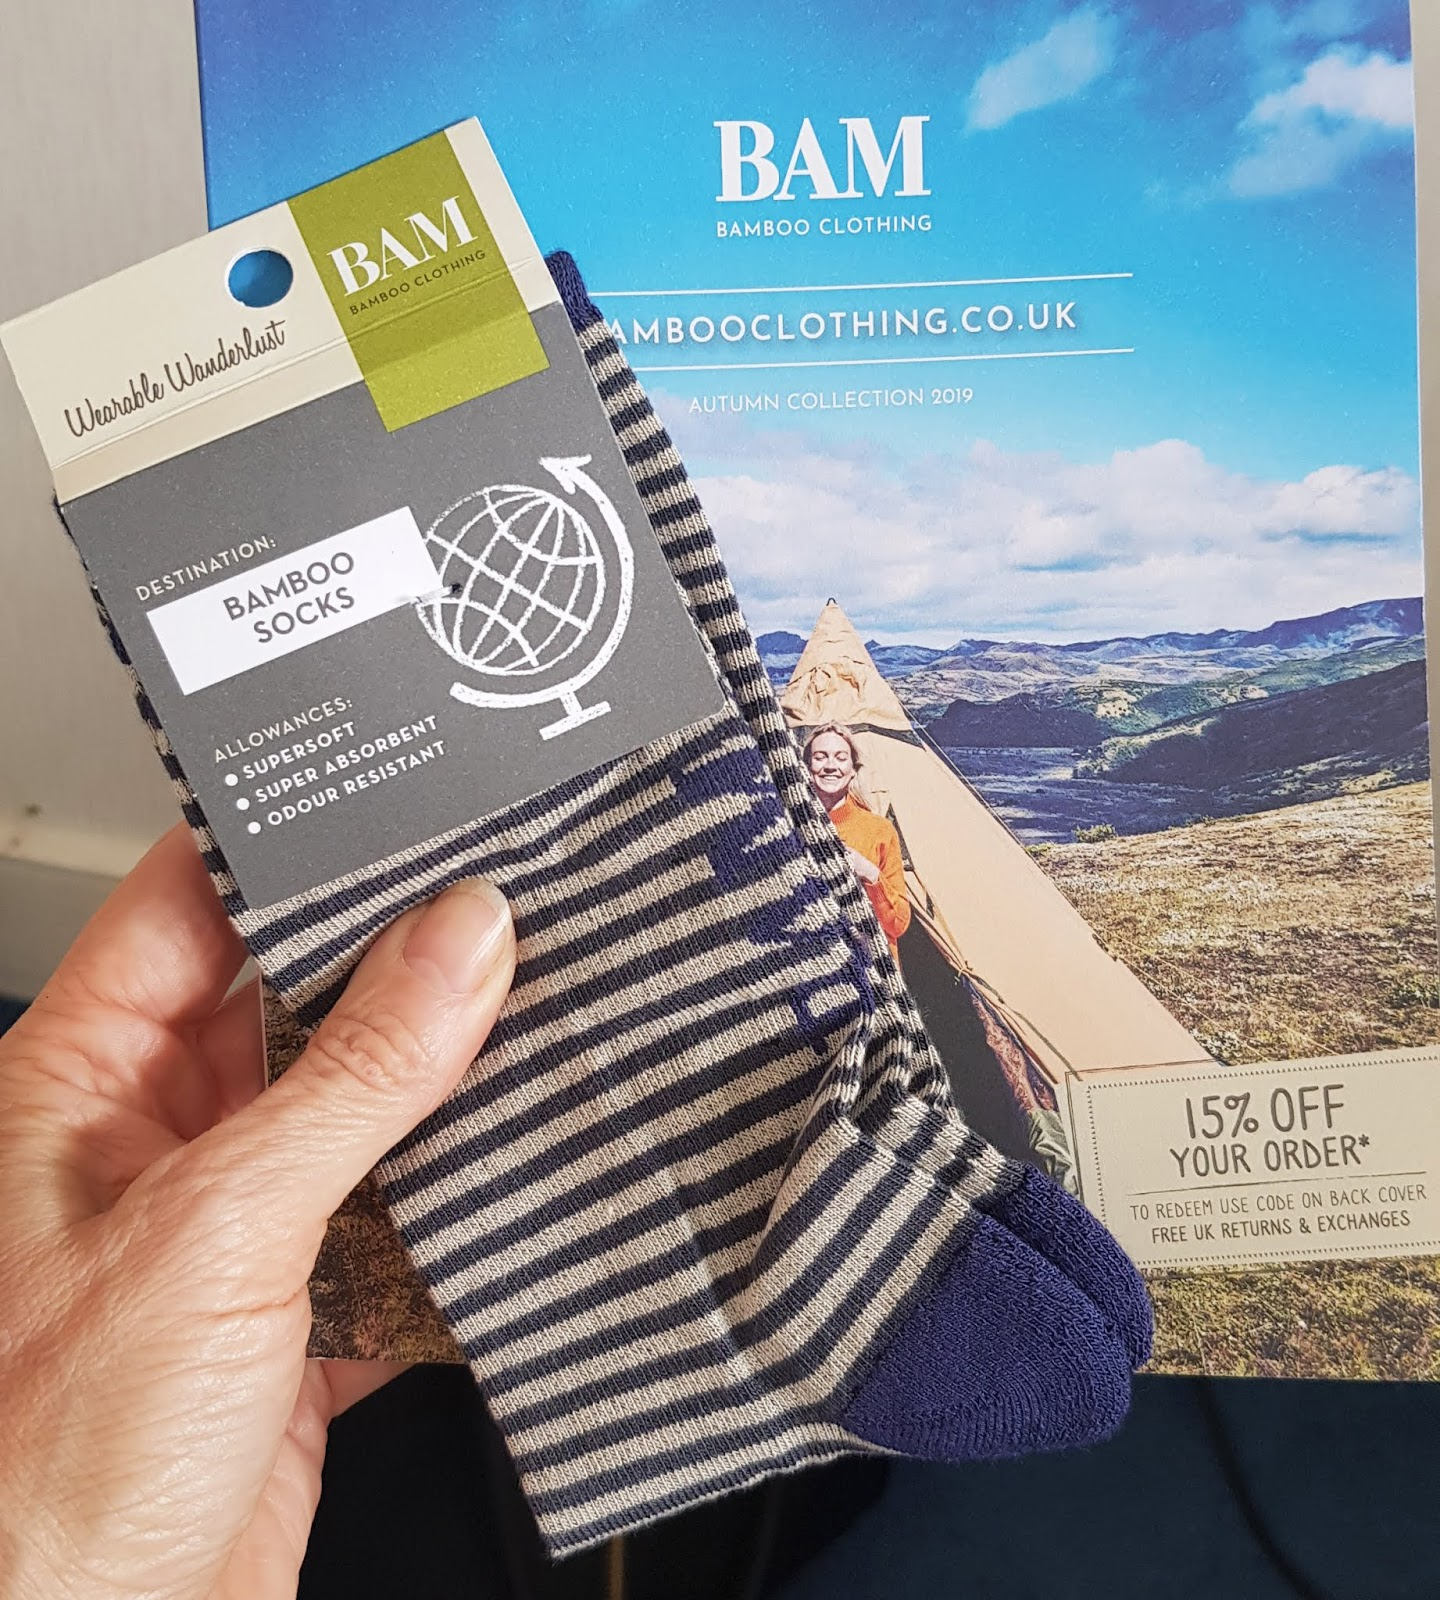 Free socks sent out by bamboo clothing firm BAM in the UK.